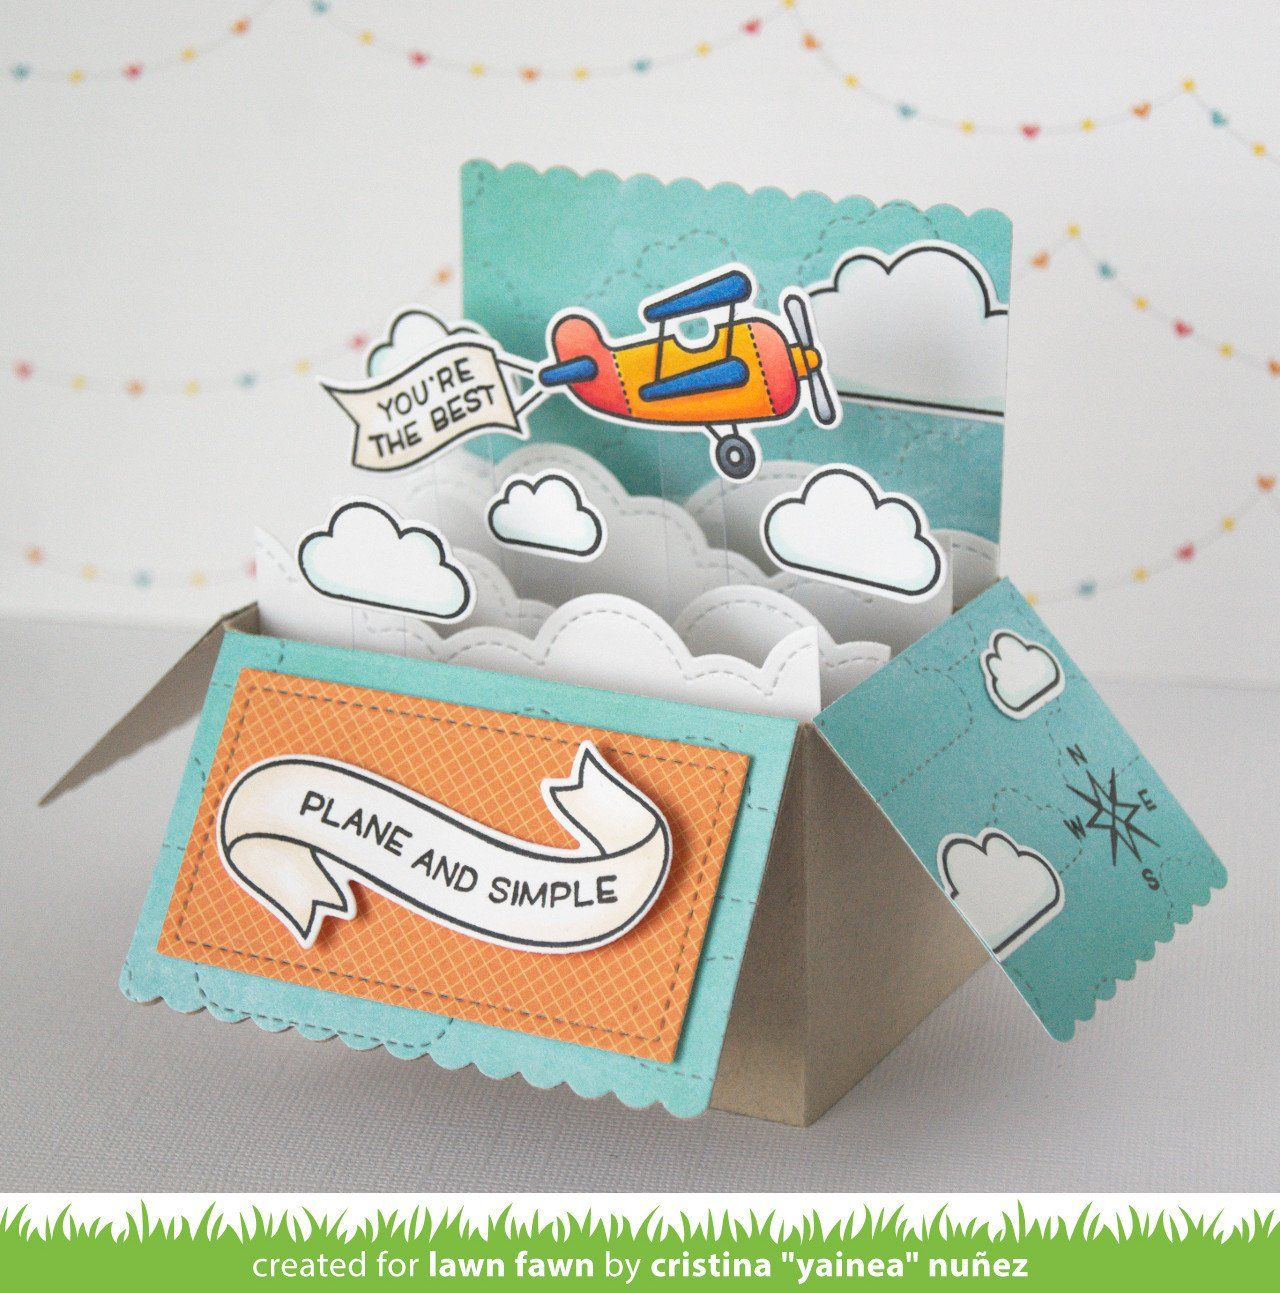 Plane And Simple Lawn Fawn Stamps Pop Up Box Cards Interactive